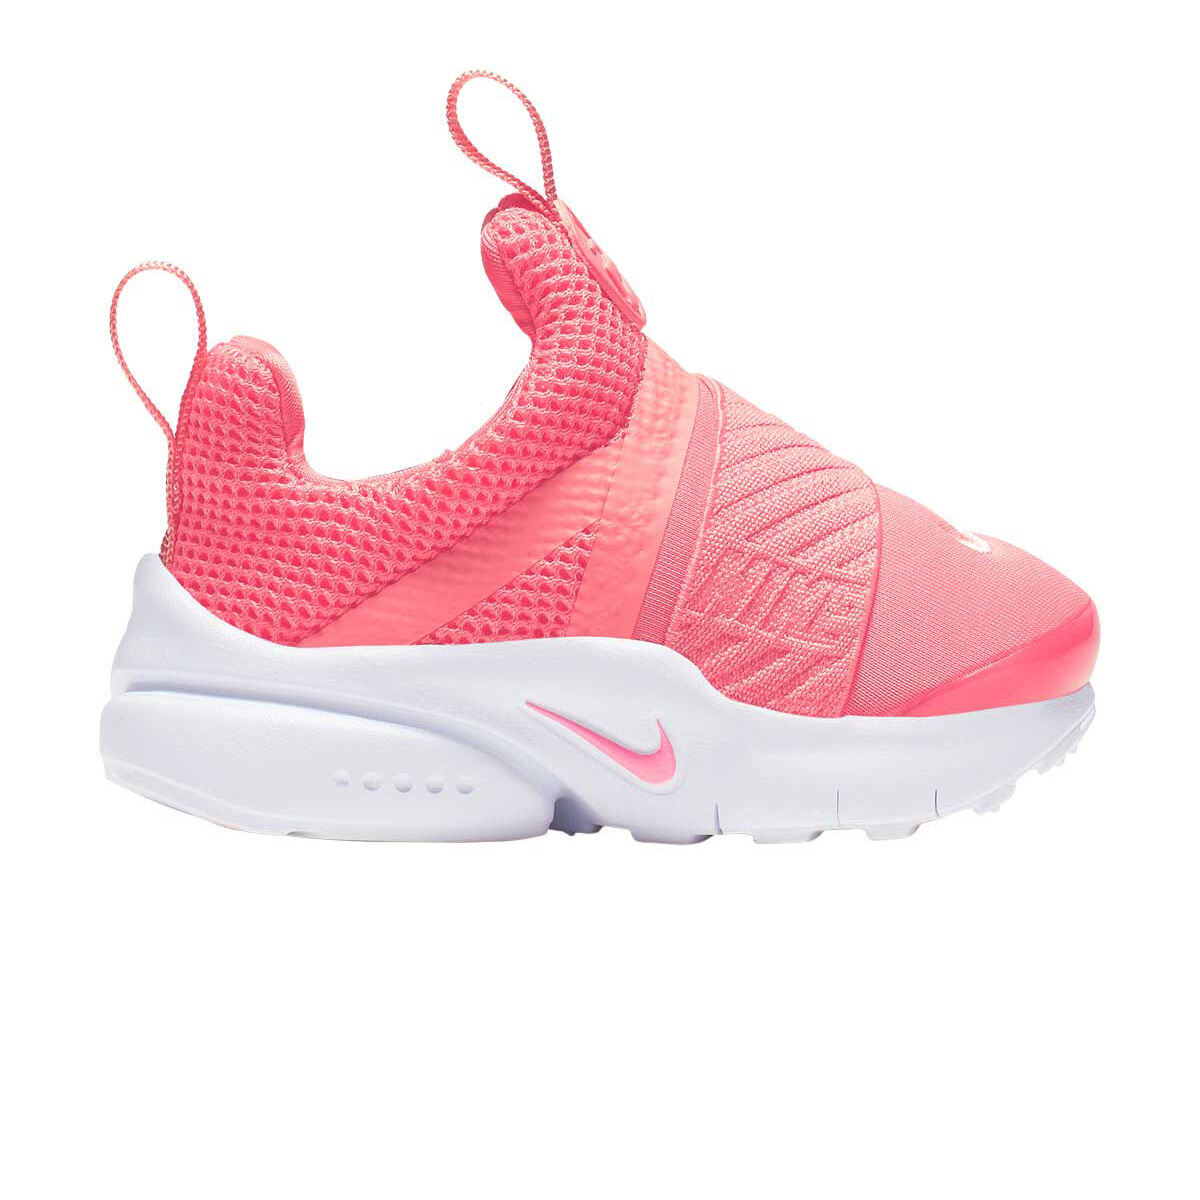 Nike Presto Extreme Toddlers Running Shoes